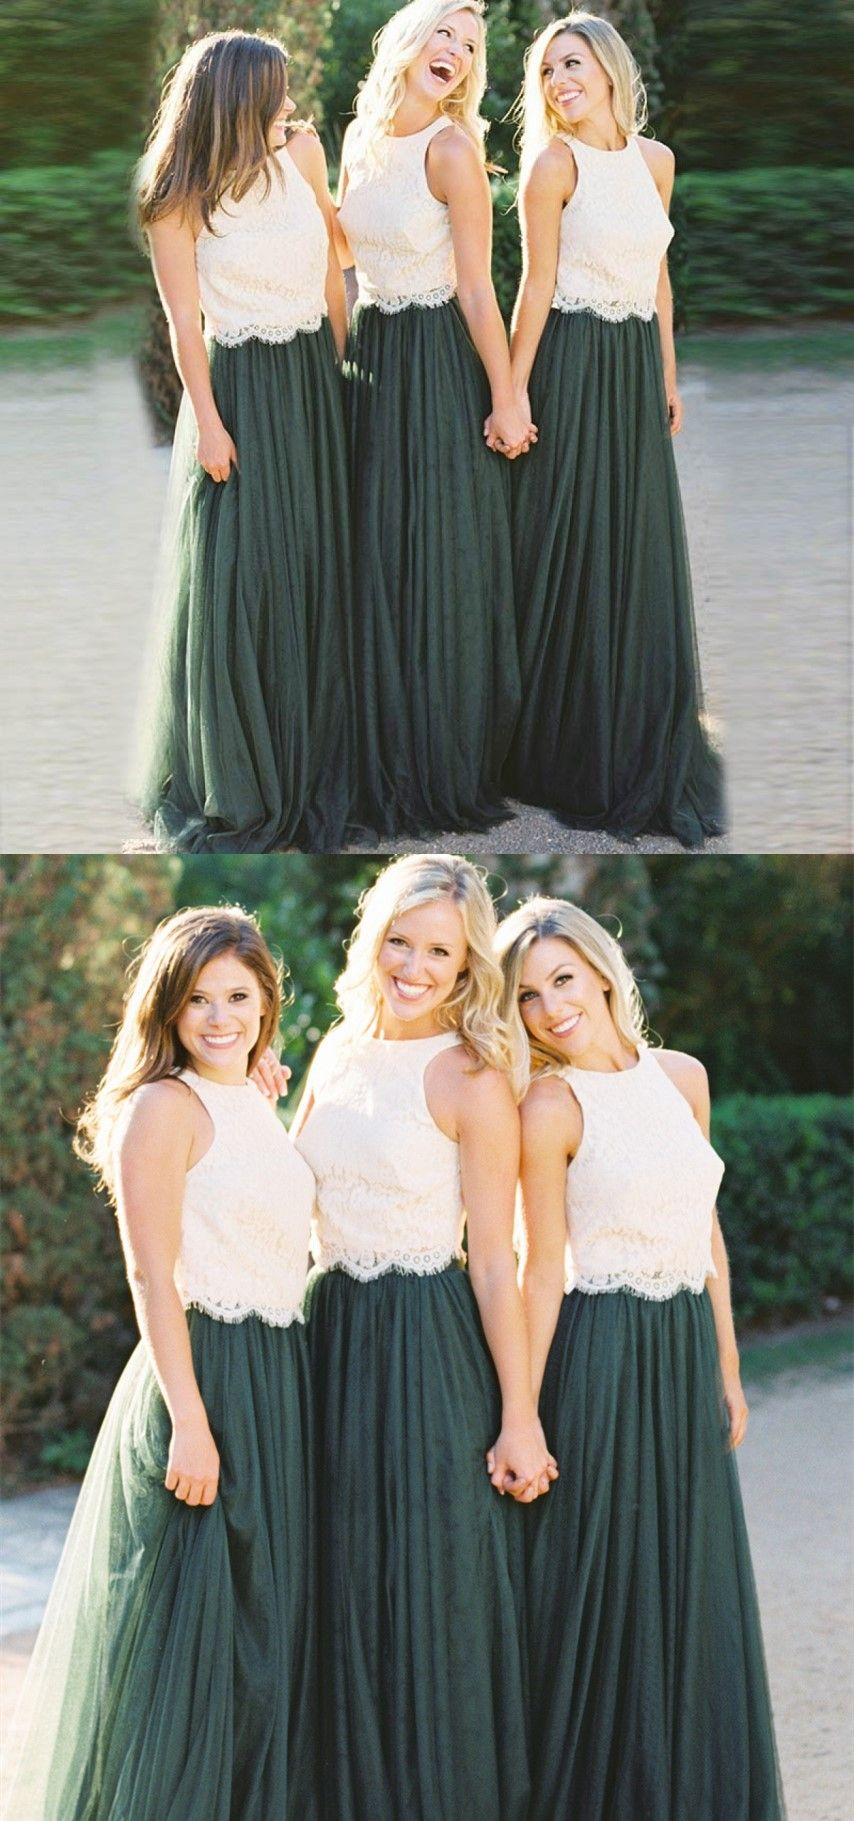 Aline round neck dark green pleated bridesmaid dress with lace in